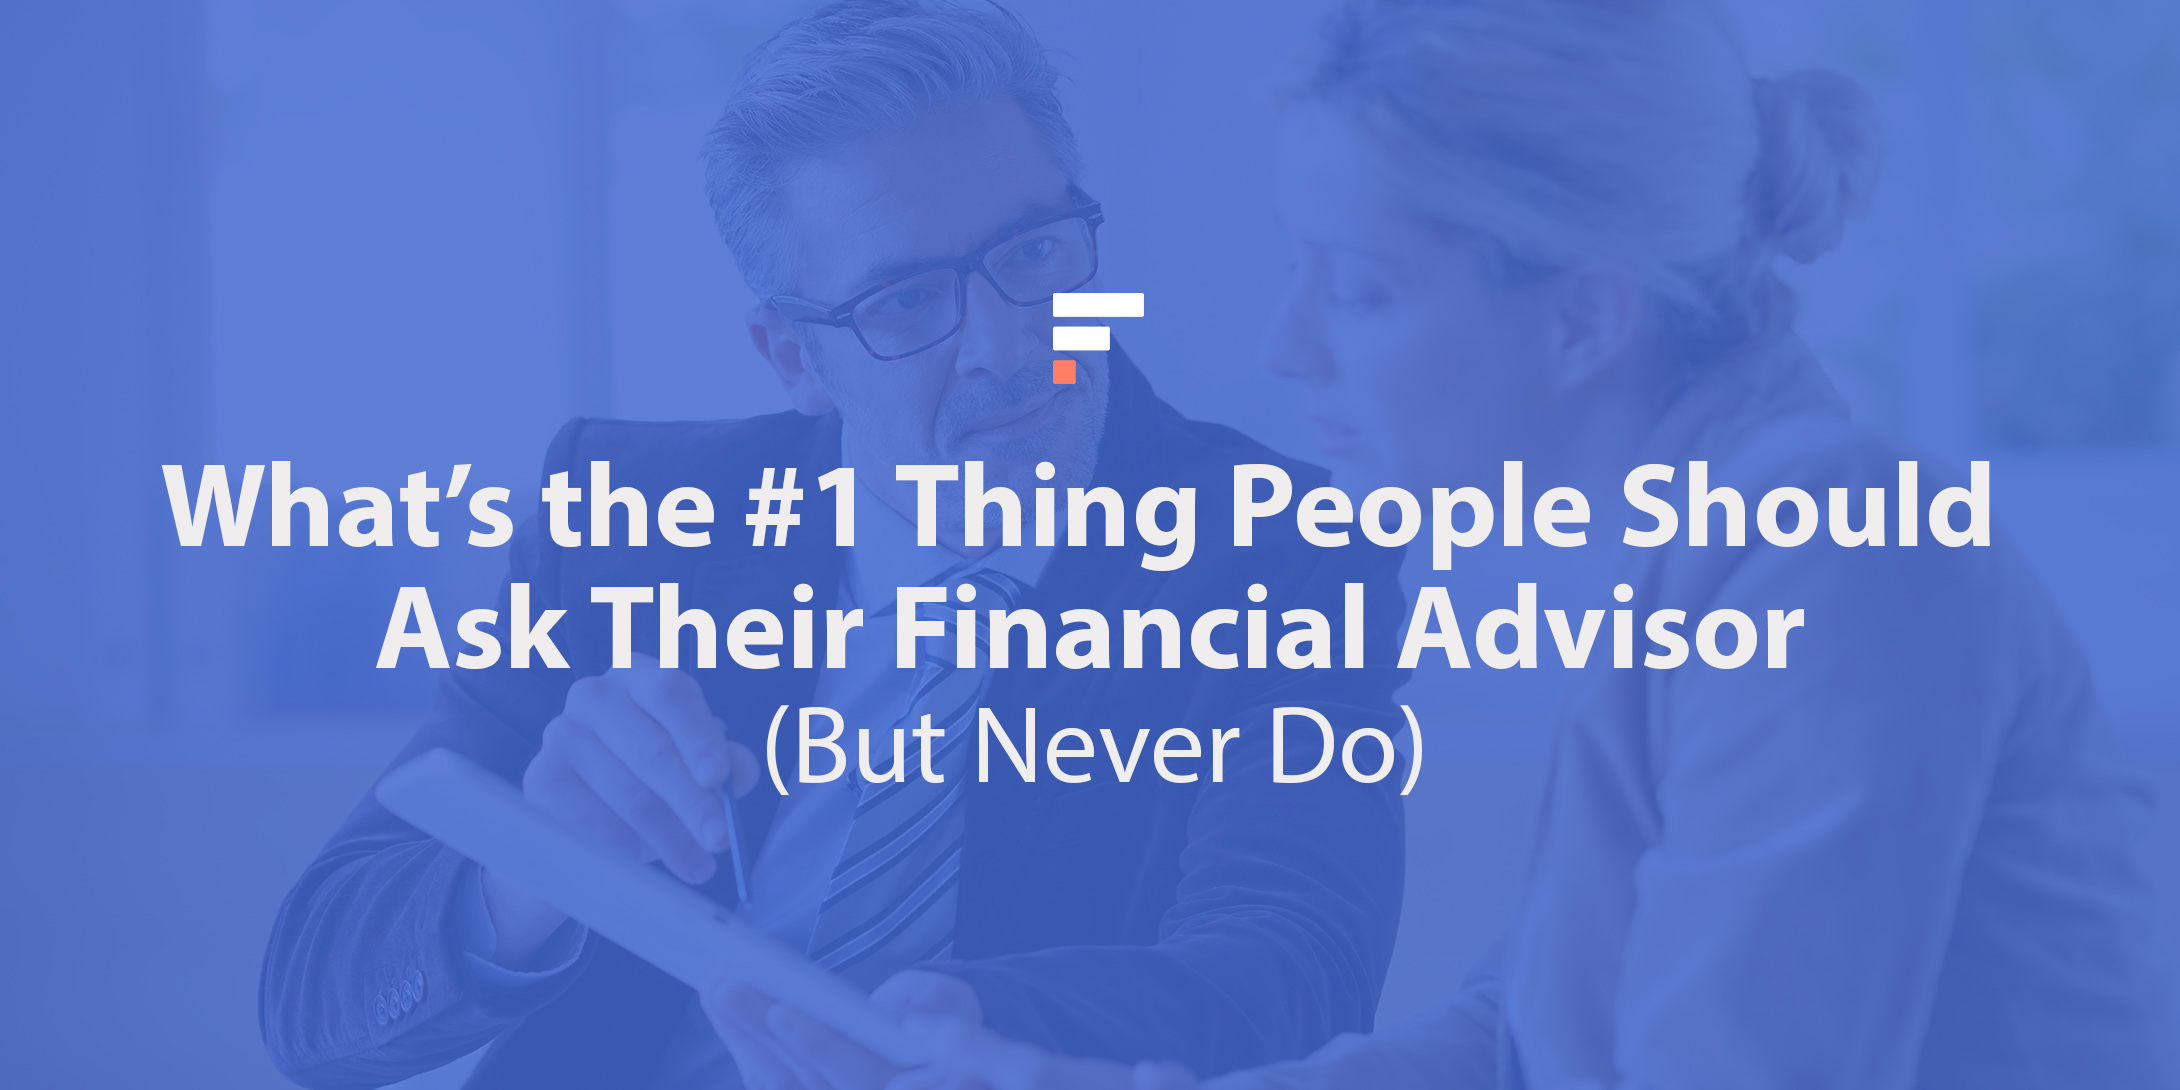 What's the #1 Thing People Should Ask Their Financial Advisor (But Never Do)?